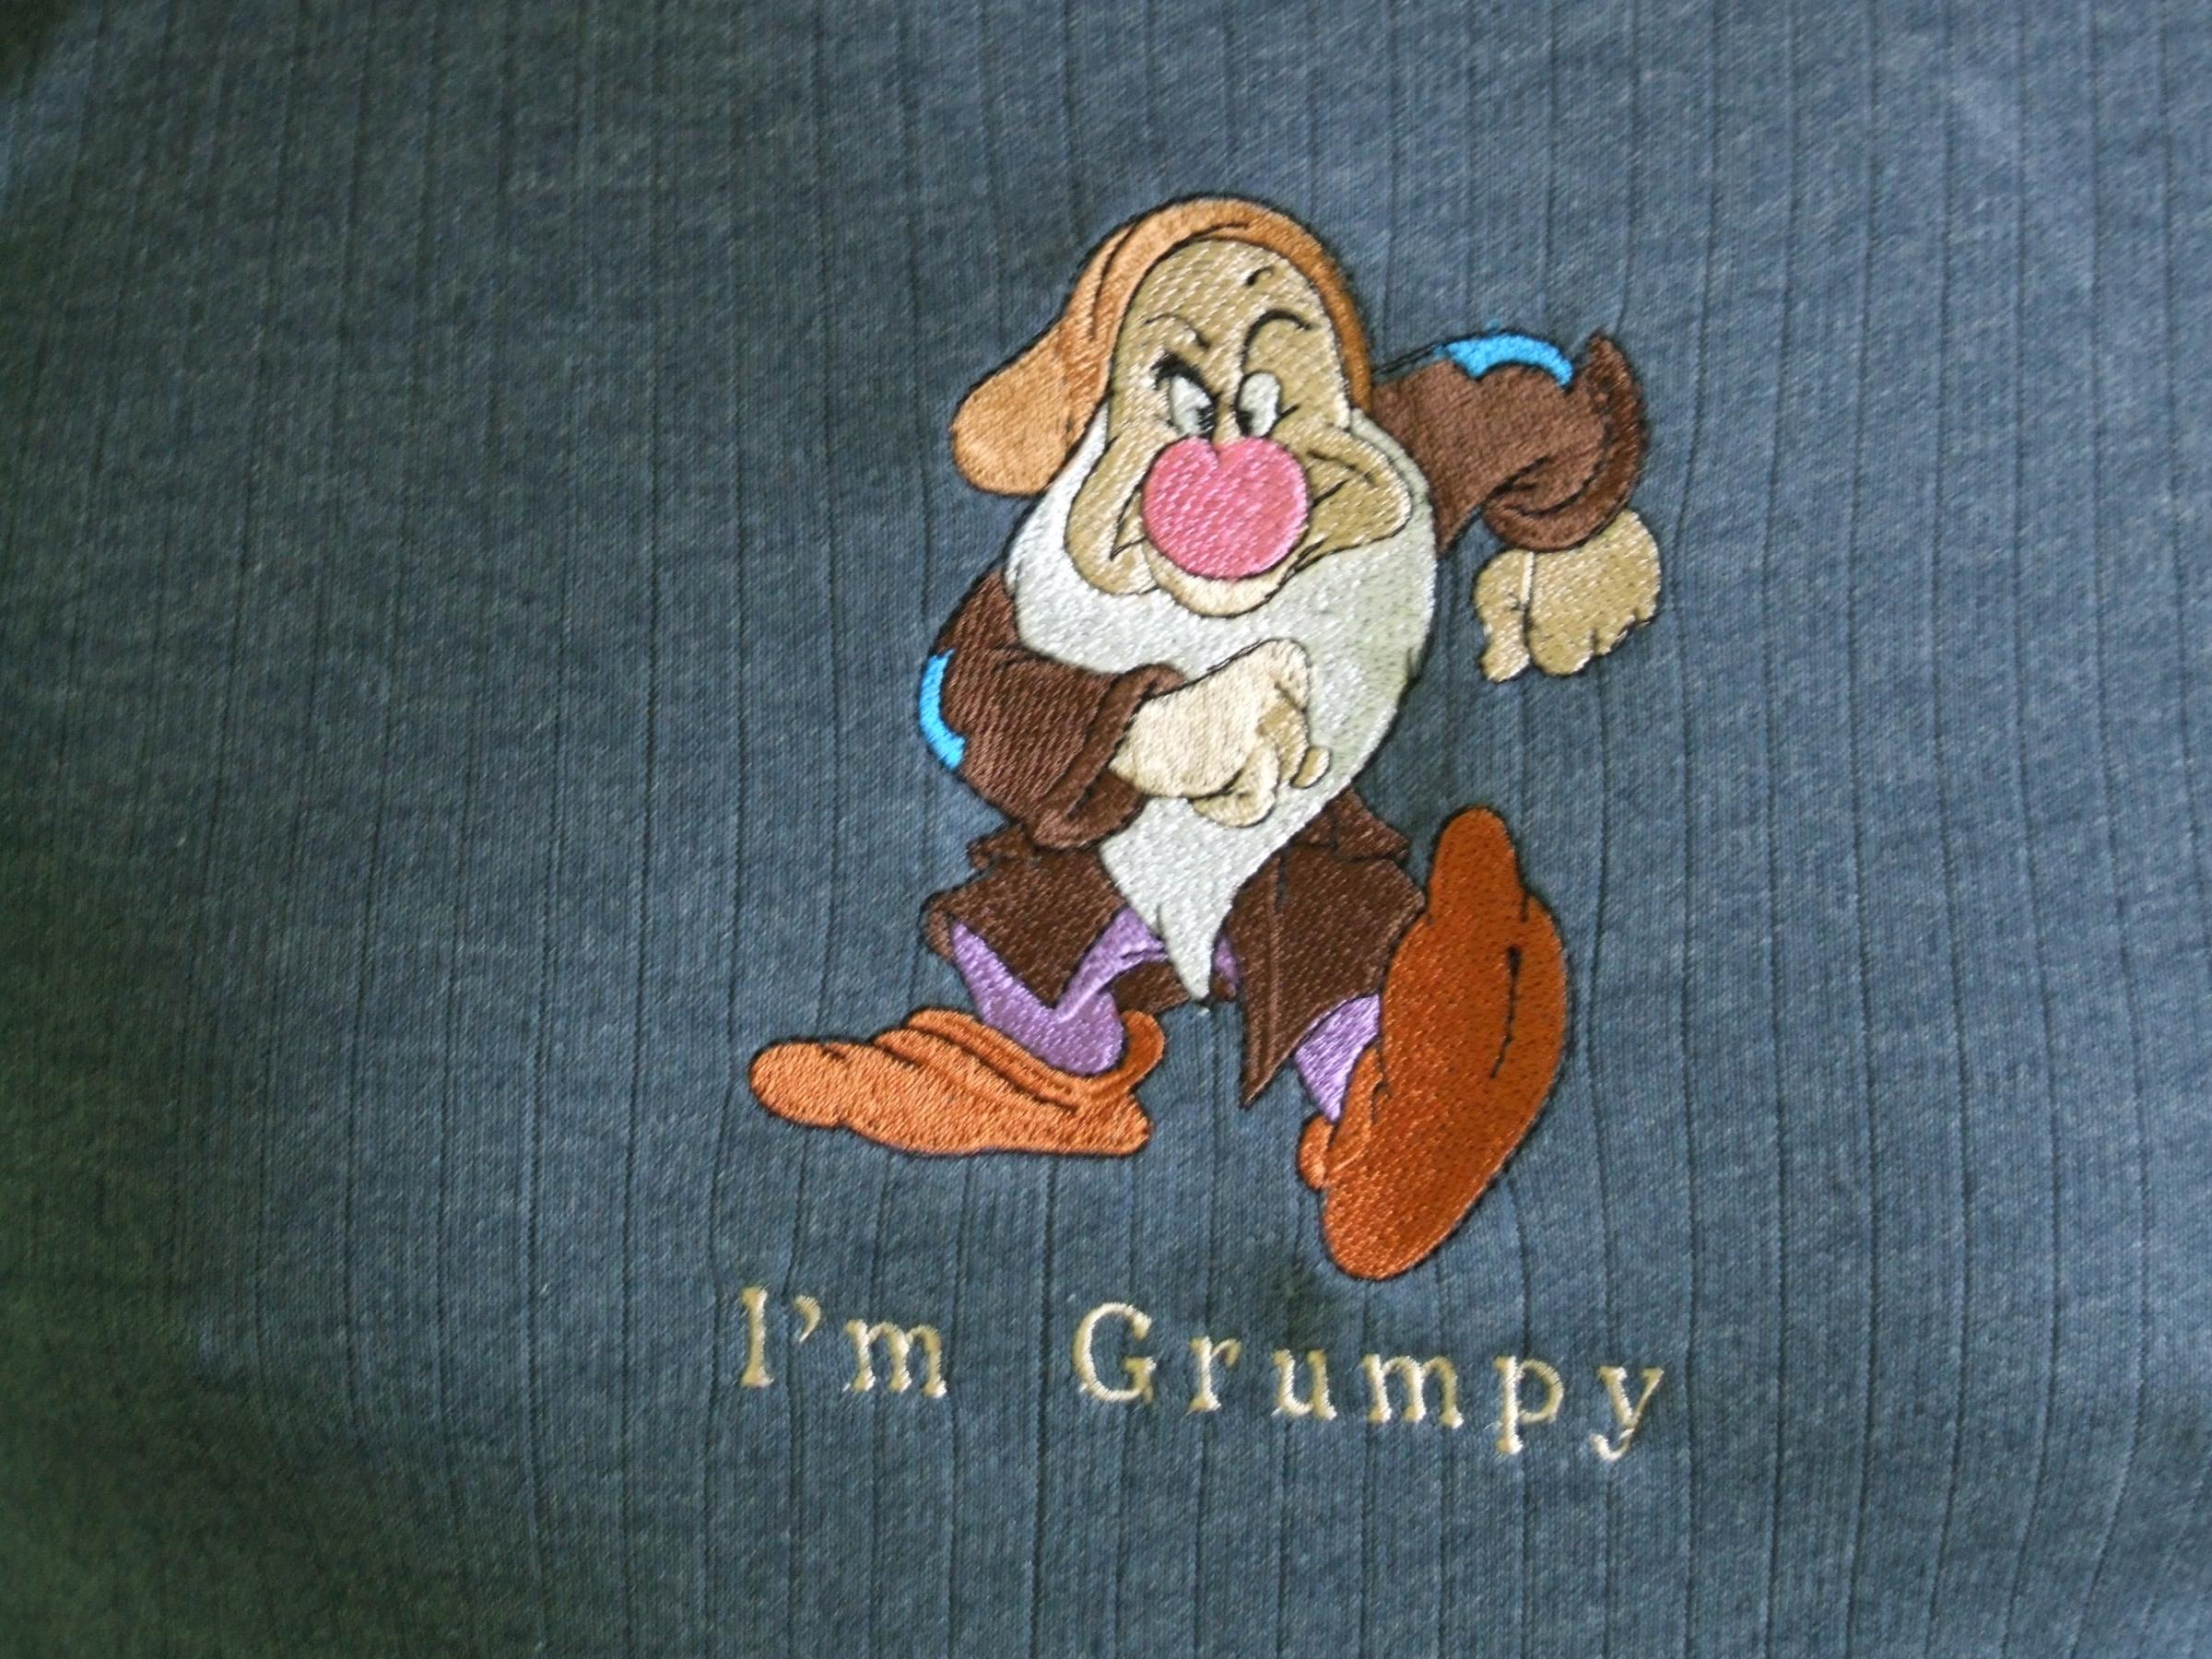 Grumpy embroidery design